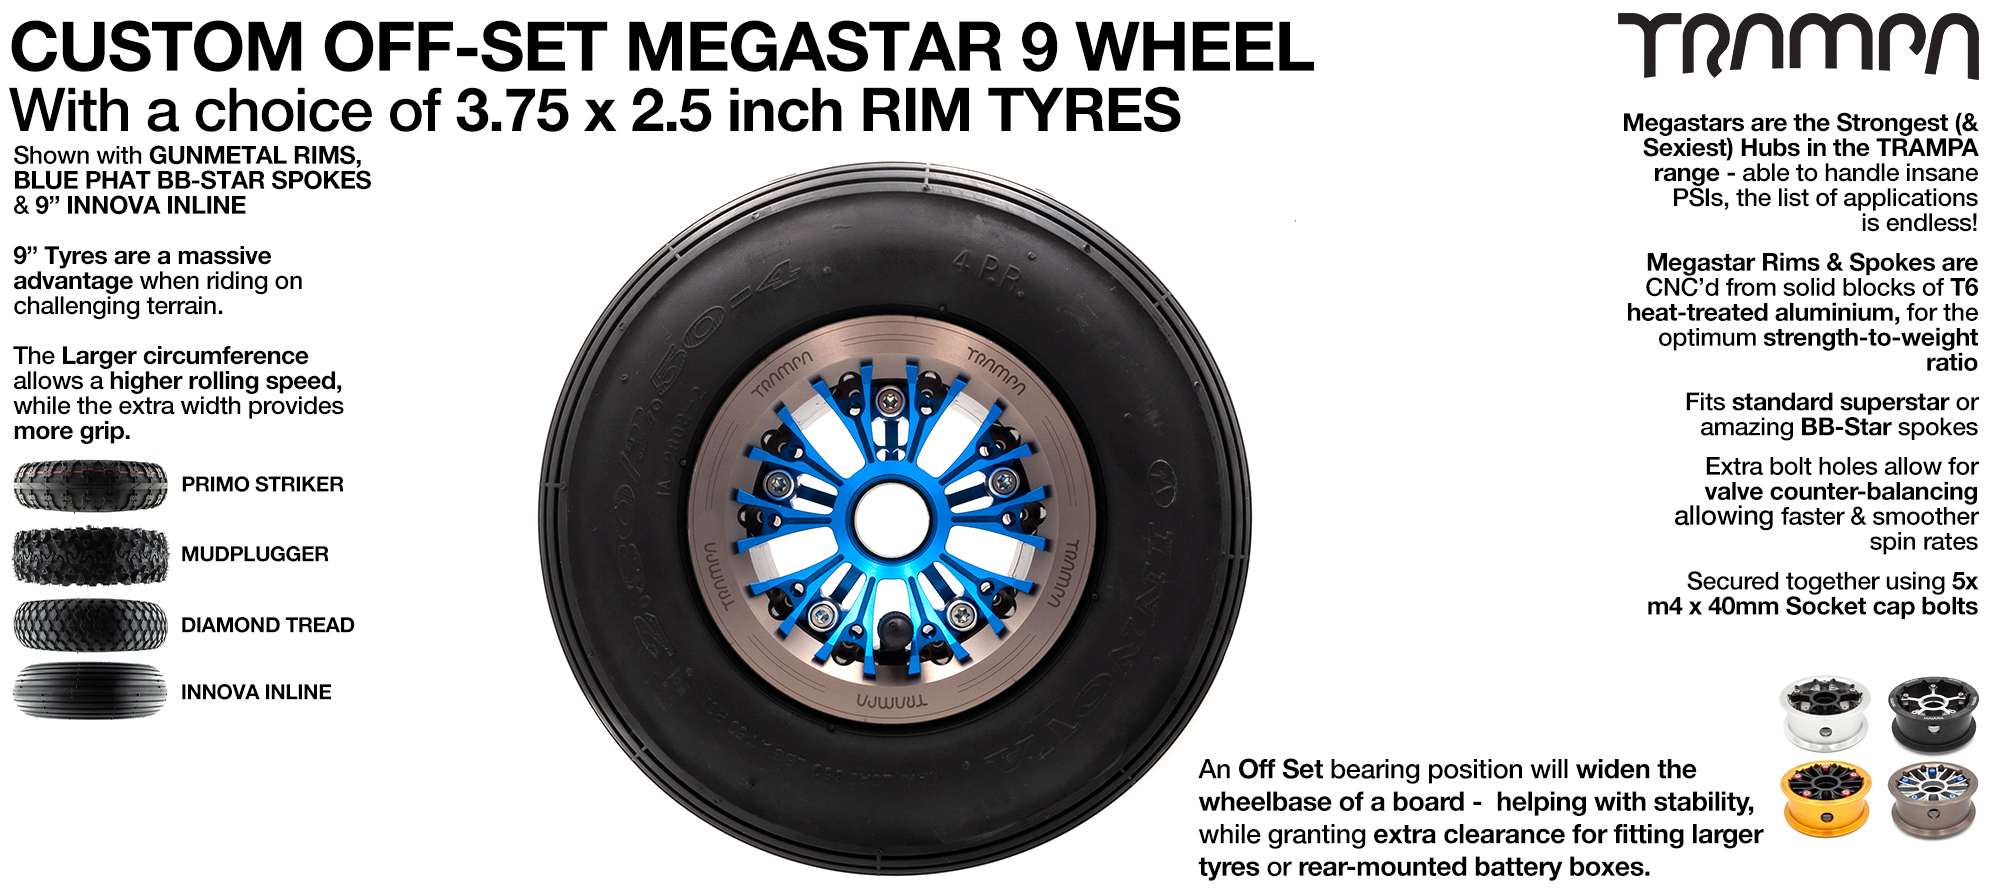 Custom 9 inch MEGASTARS Wheel with OFFSET Bearing position & any 9 Inch Tyre